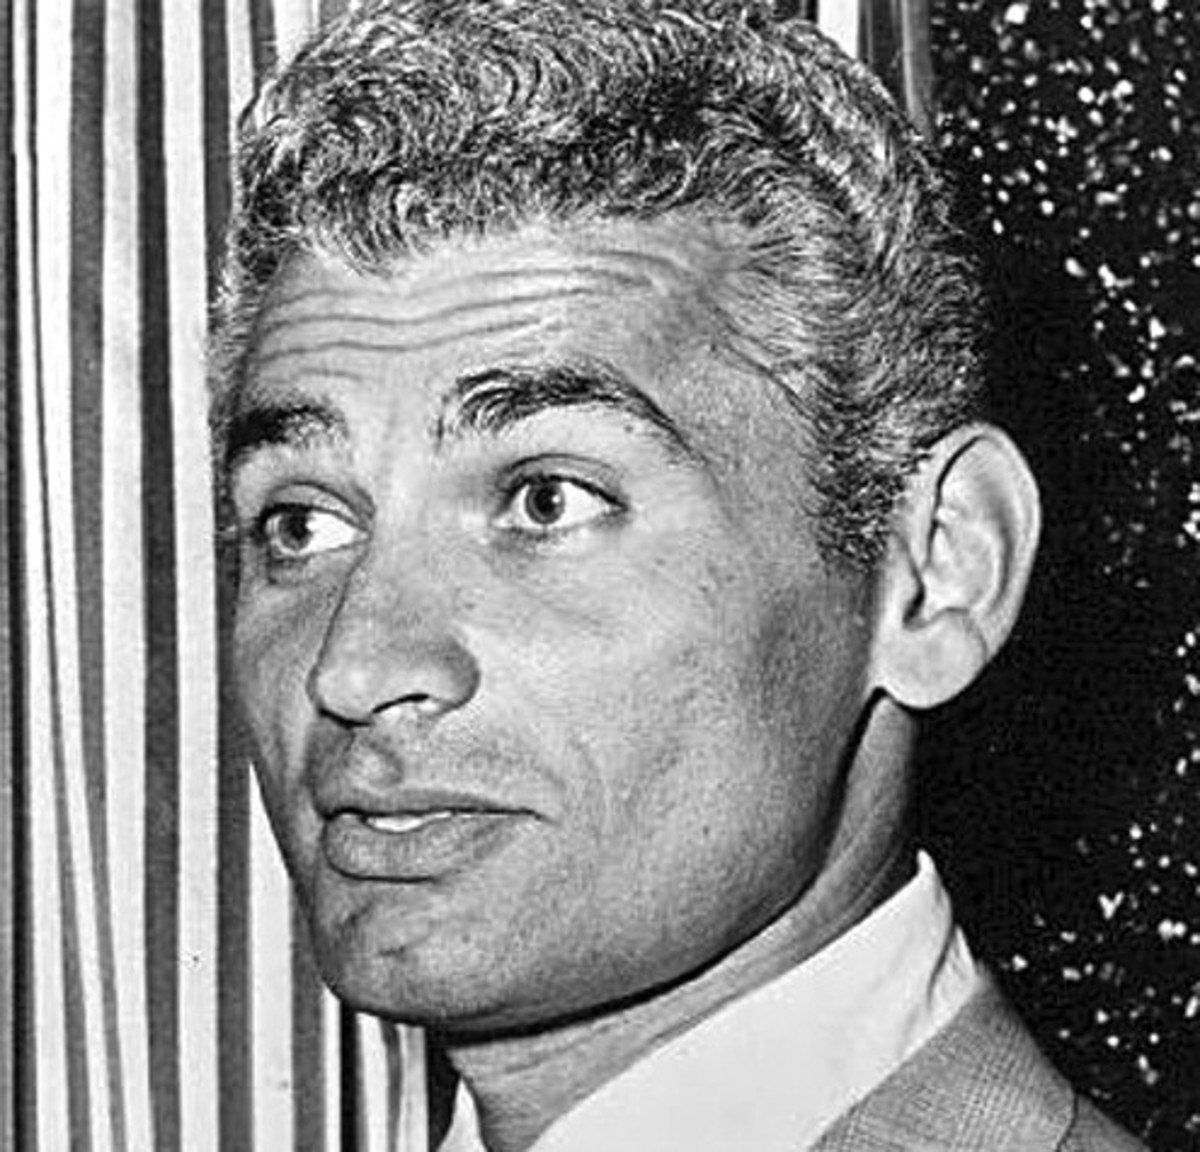 Hollywood film star Jeff Chandler born December 15 1918 died June 17 1961